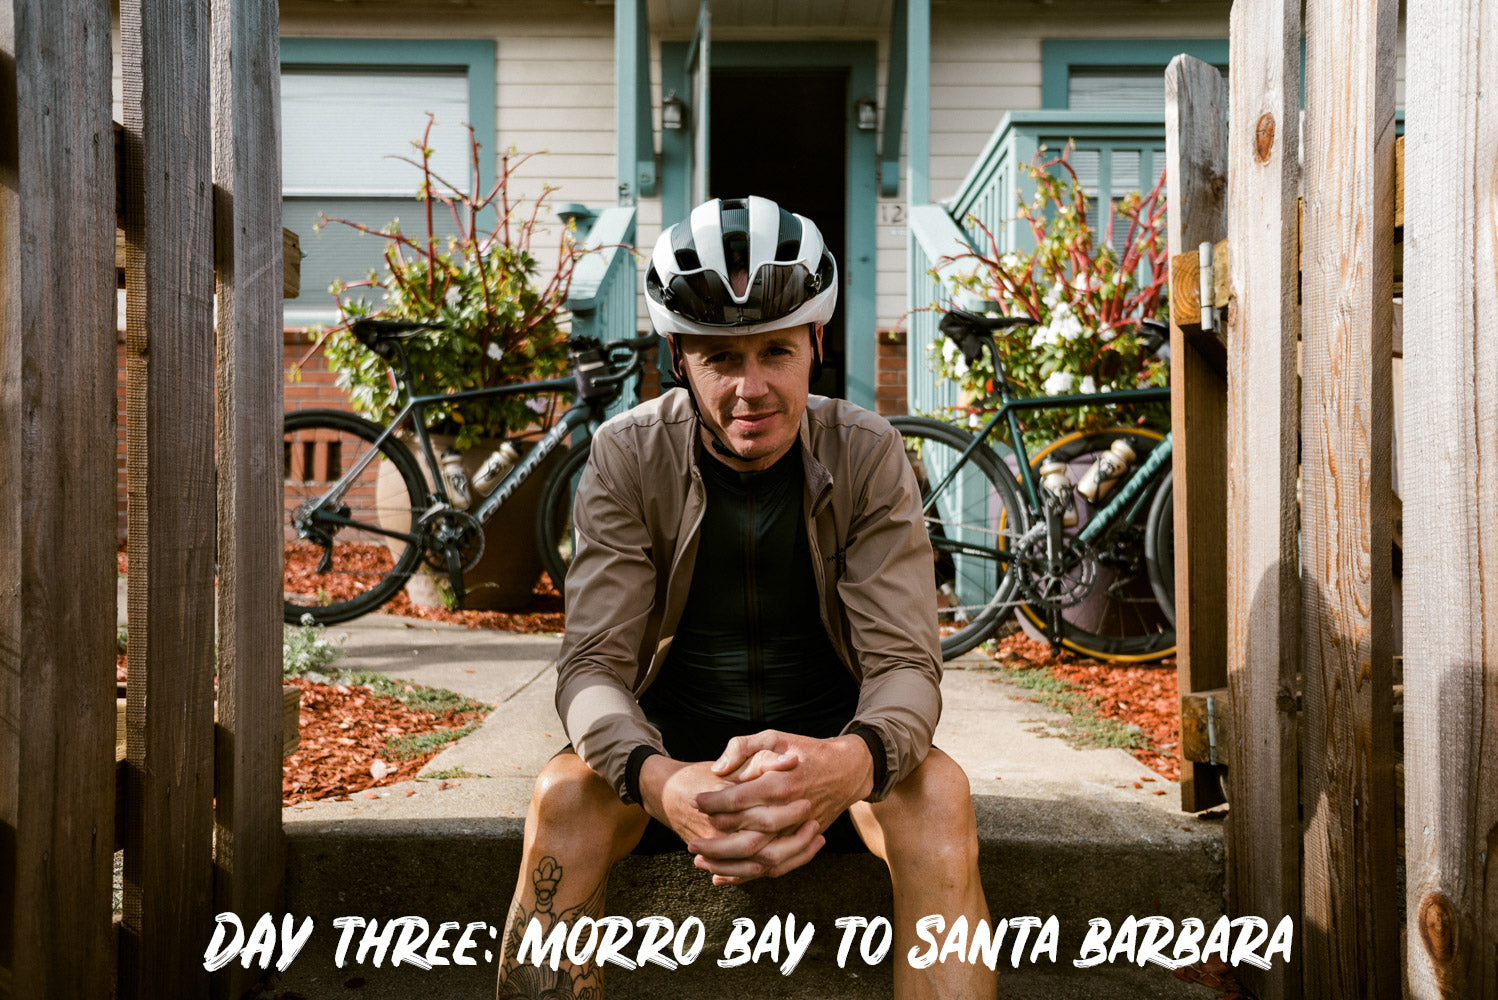 Day Three: Morrow Bay to Santa Barbara